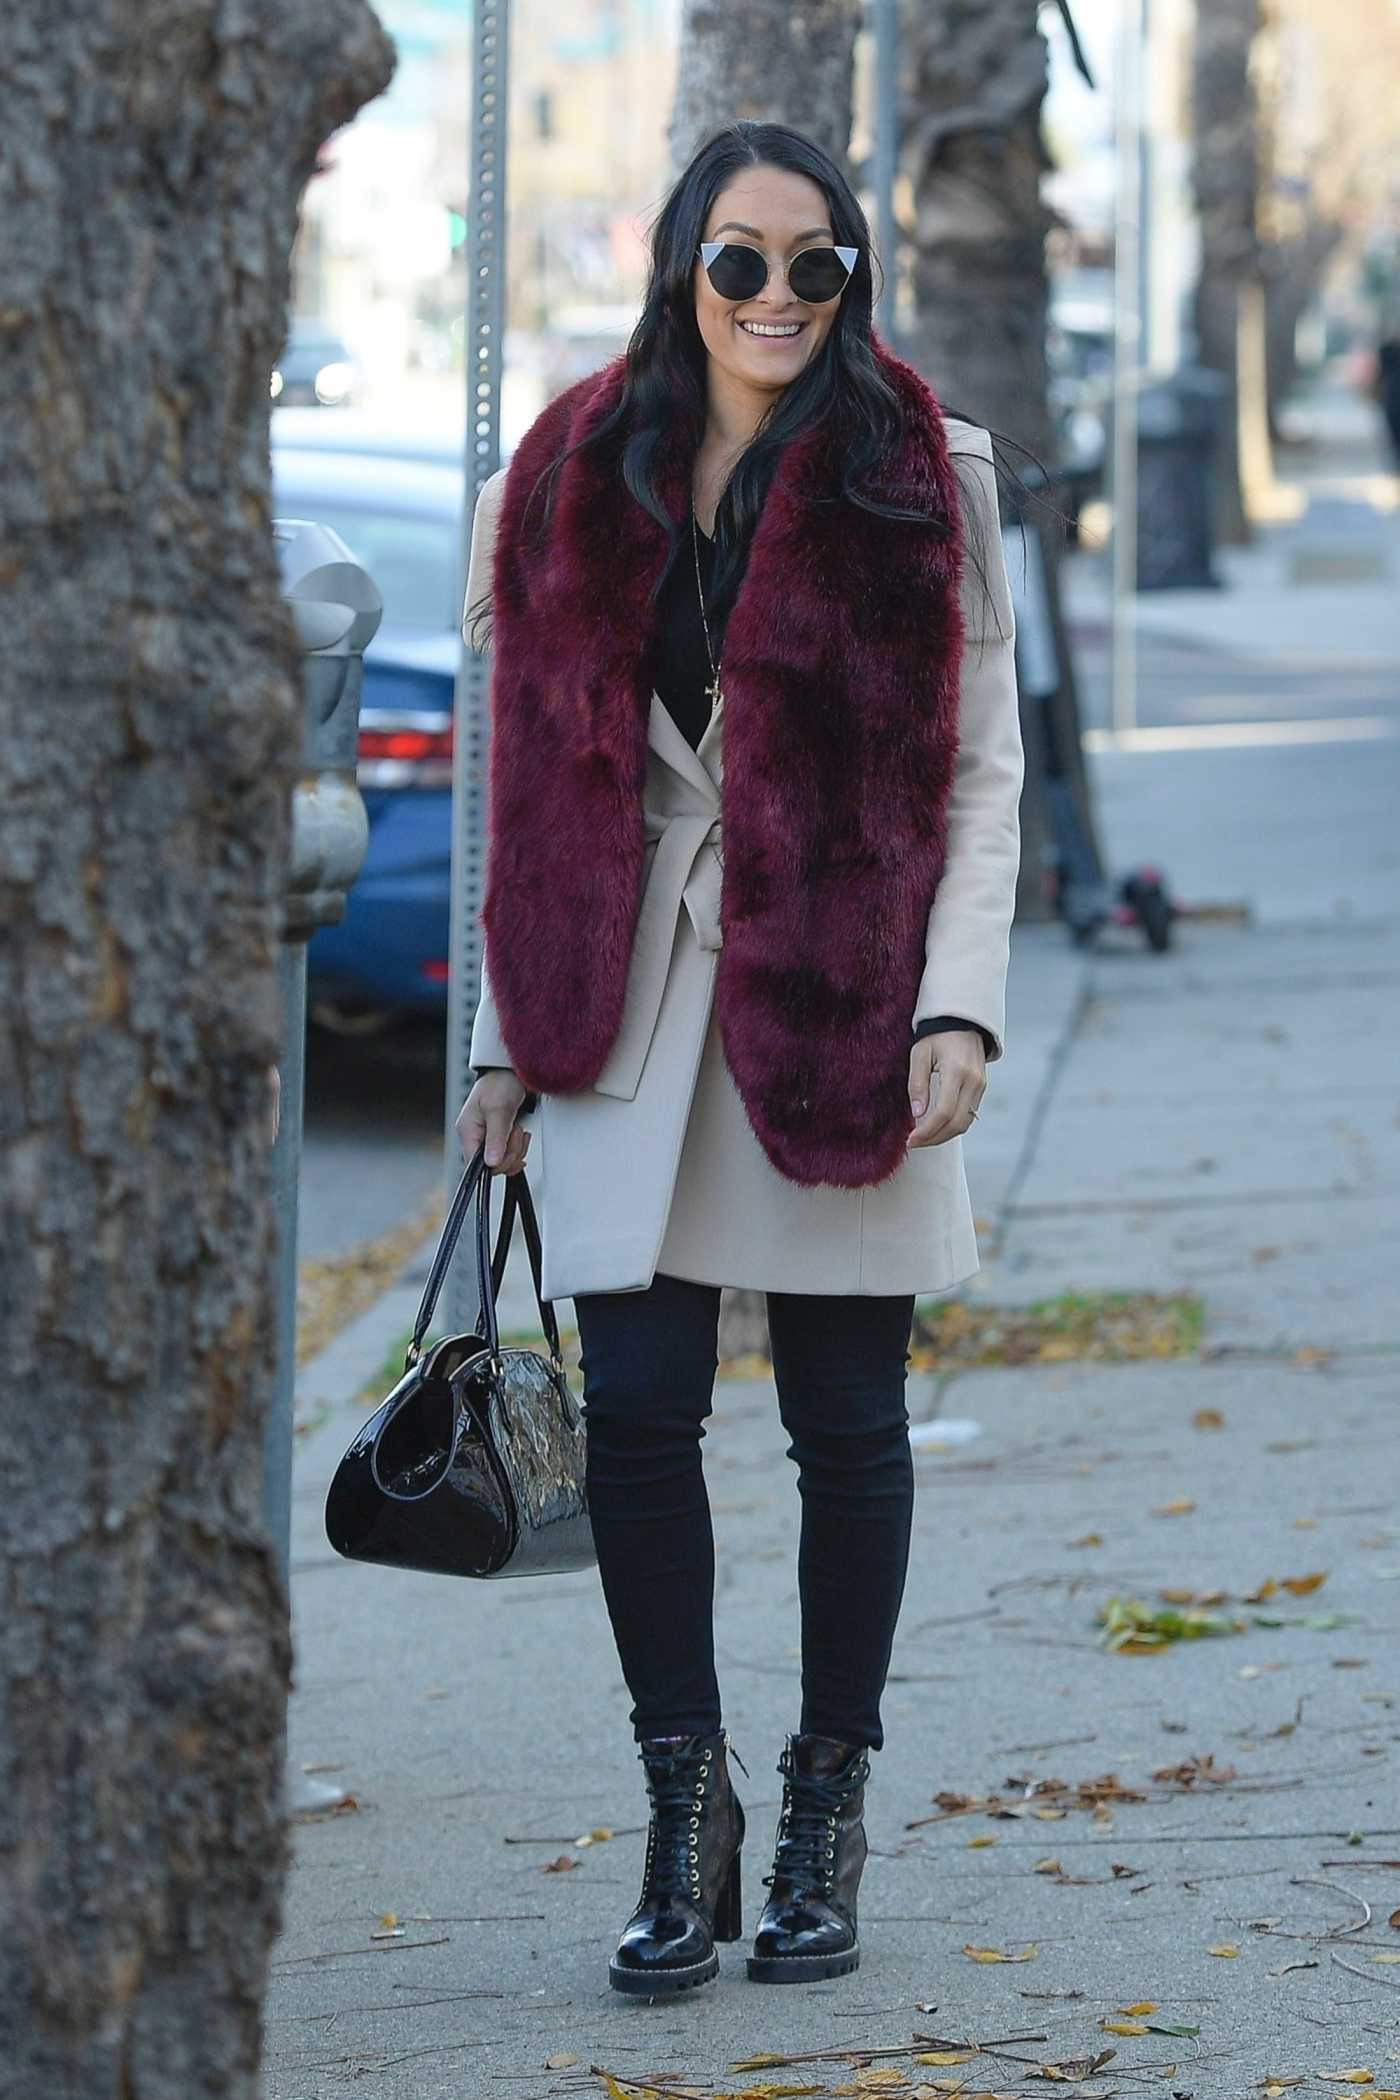 Nikki Bella in a Beige Coat Was Seen Out with Artem Chigvintsev in LA 01/09/2020